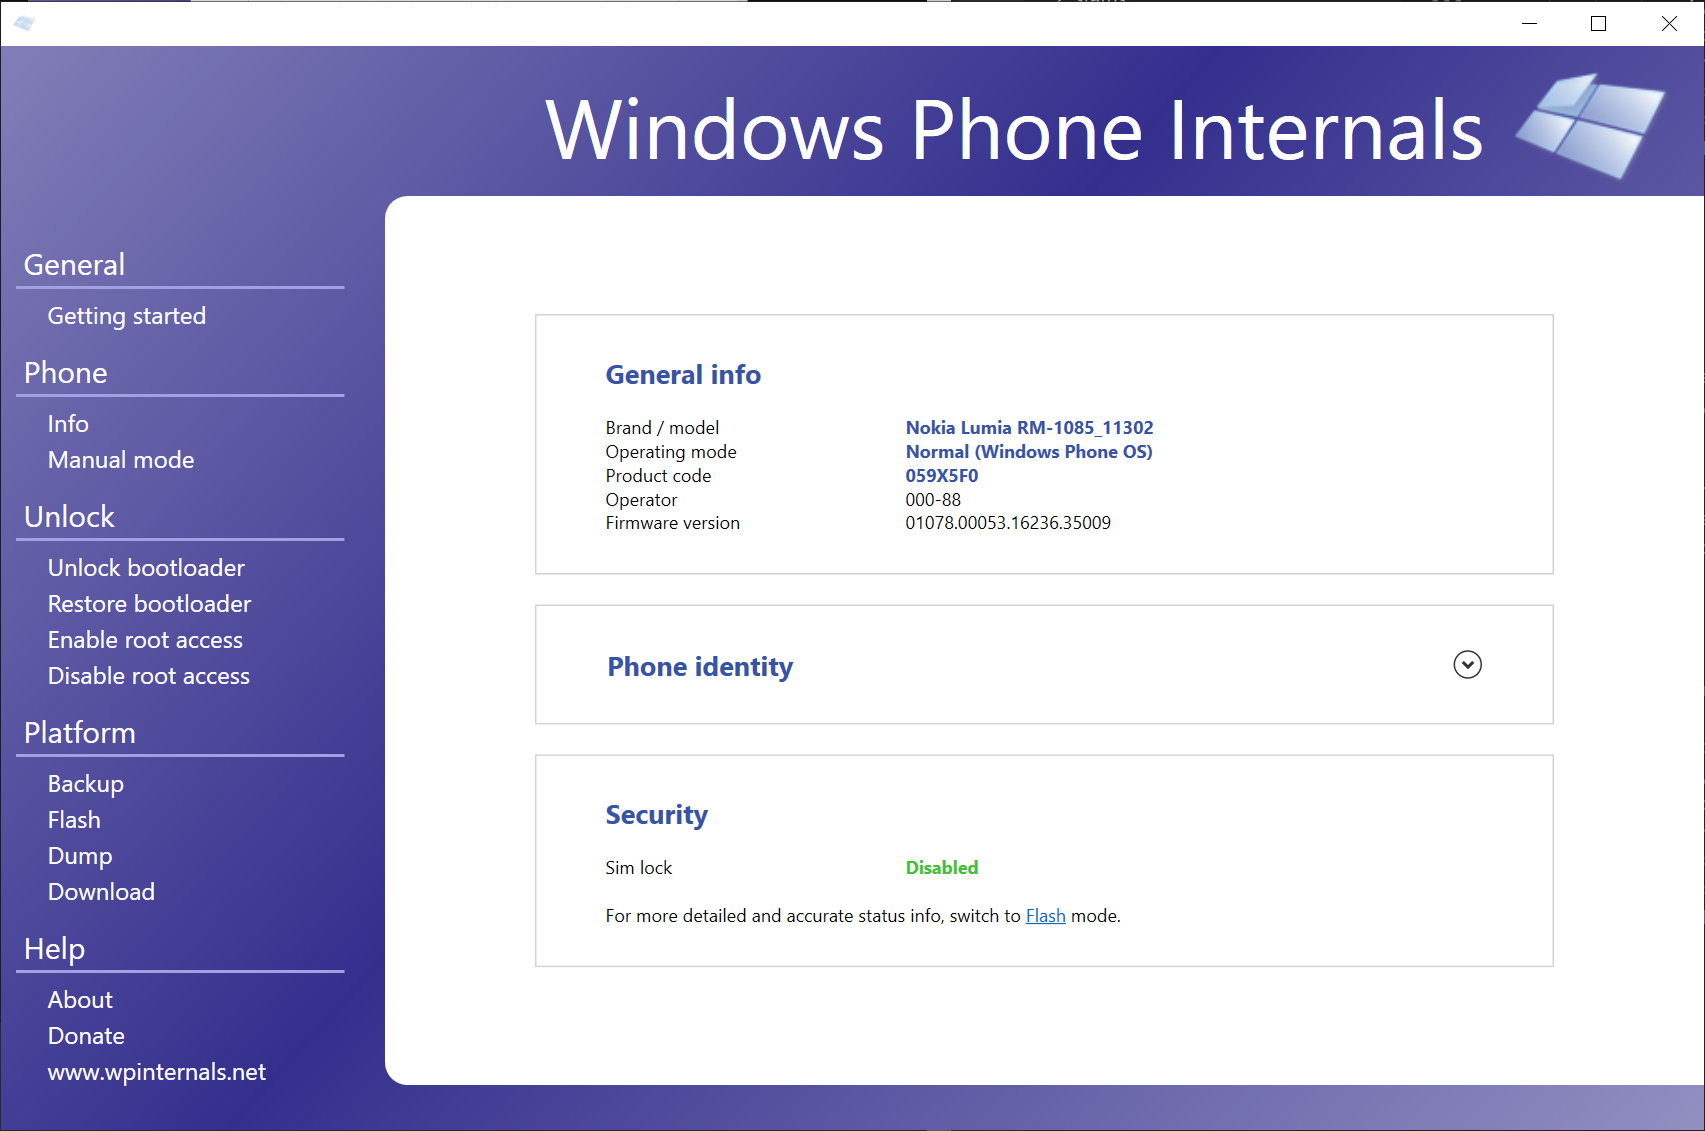 The WPInternals device info page